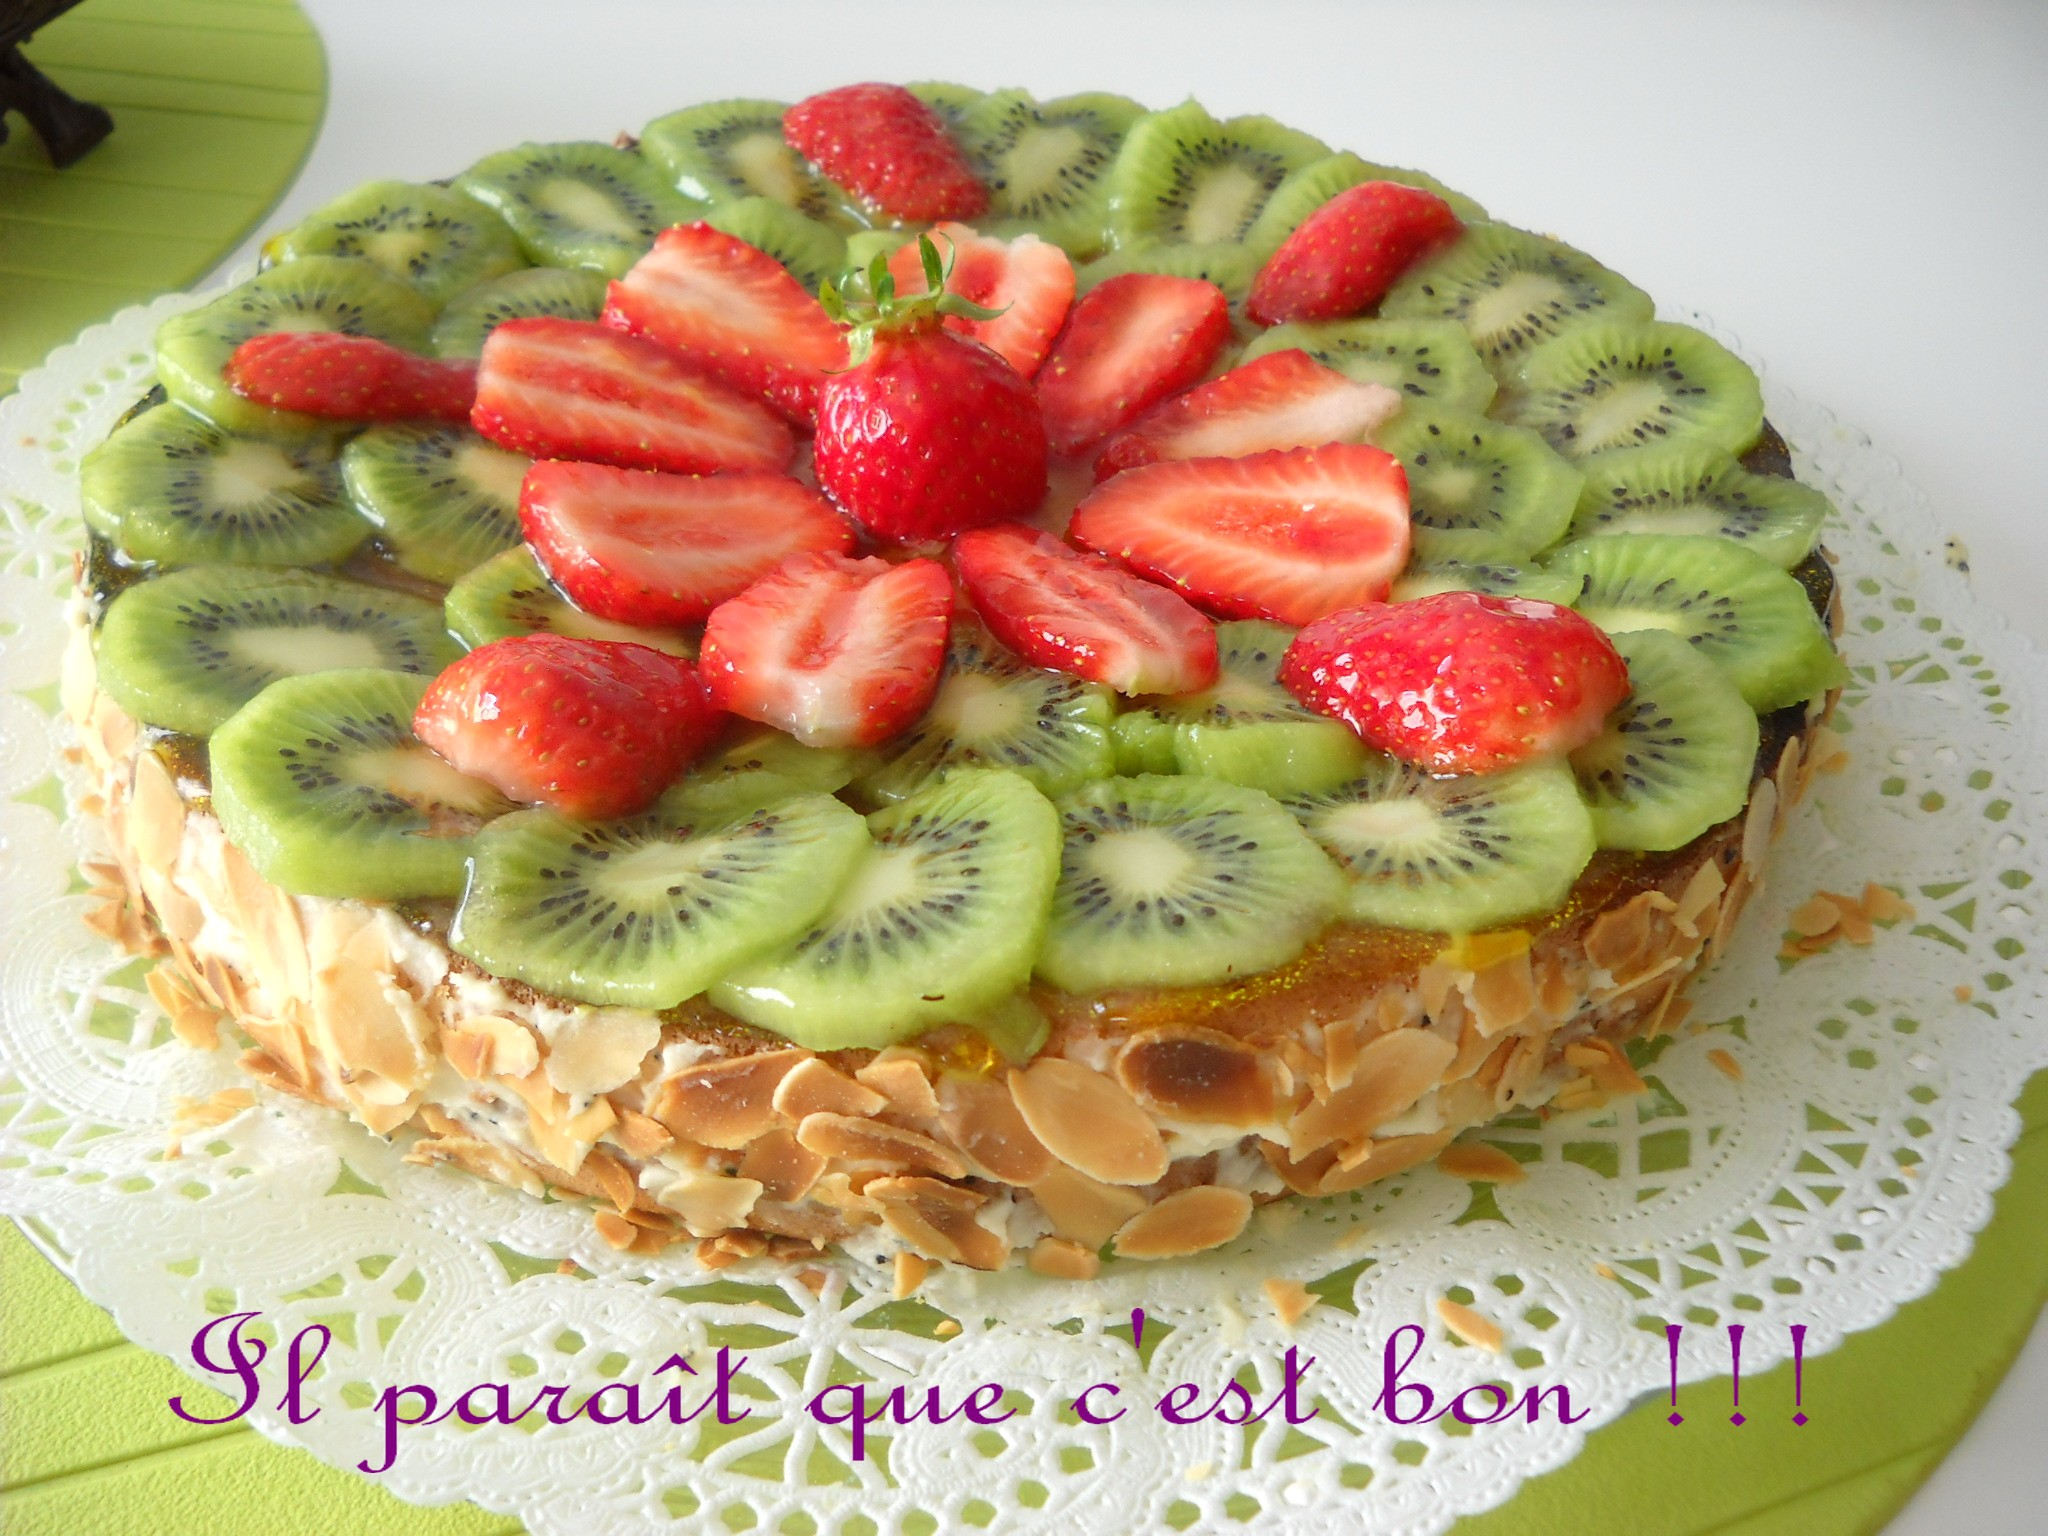 gâteau aux fruits de la passion